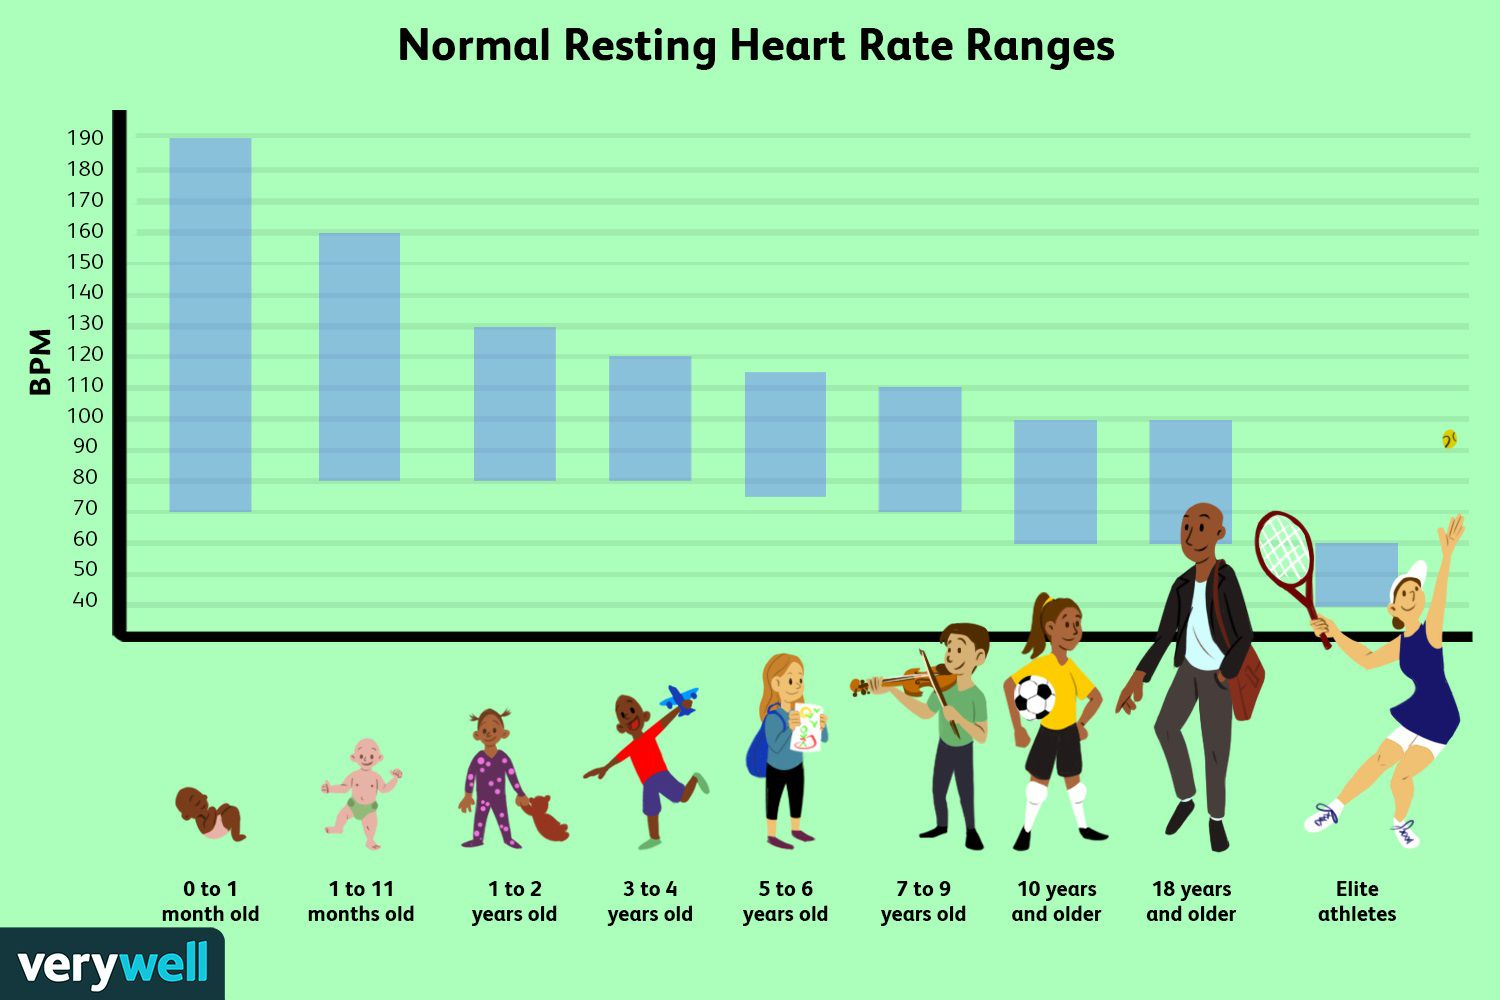 Normal Resting Heart Rate Ranges